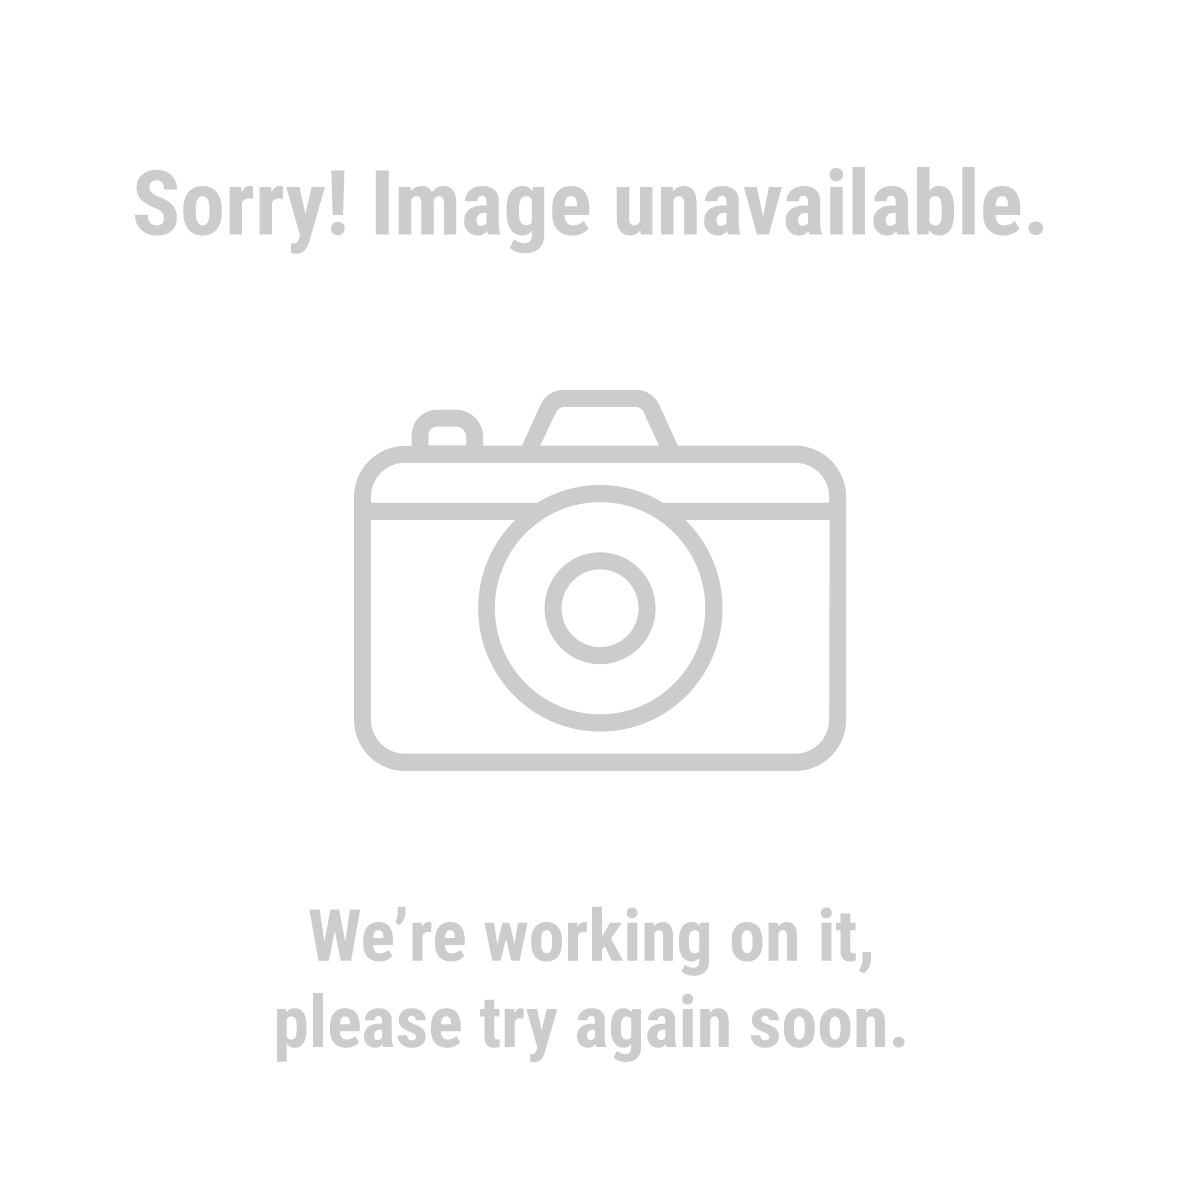 RiteLite 94253 Long-Life Wireless LED Puck Light